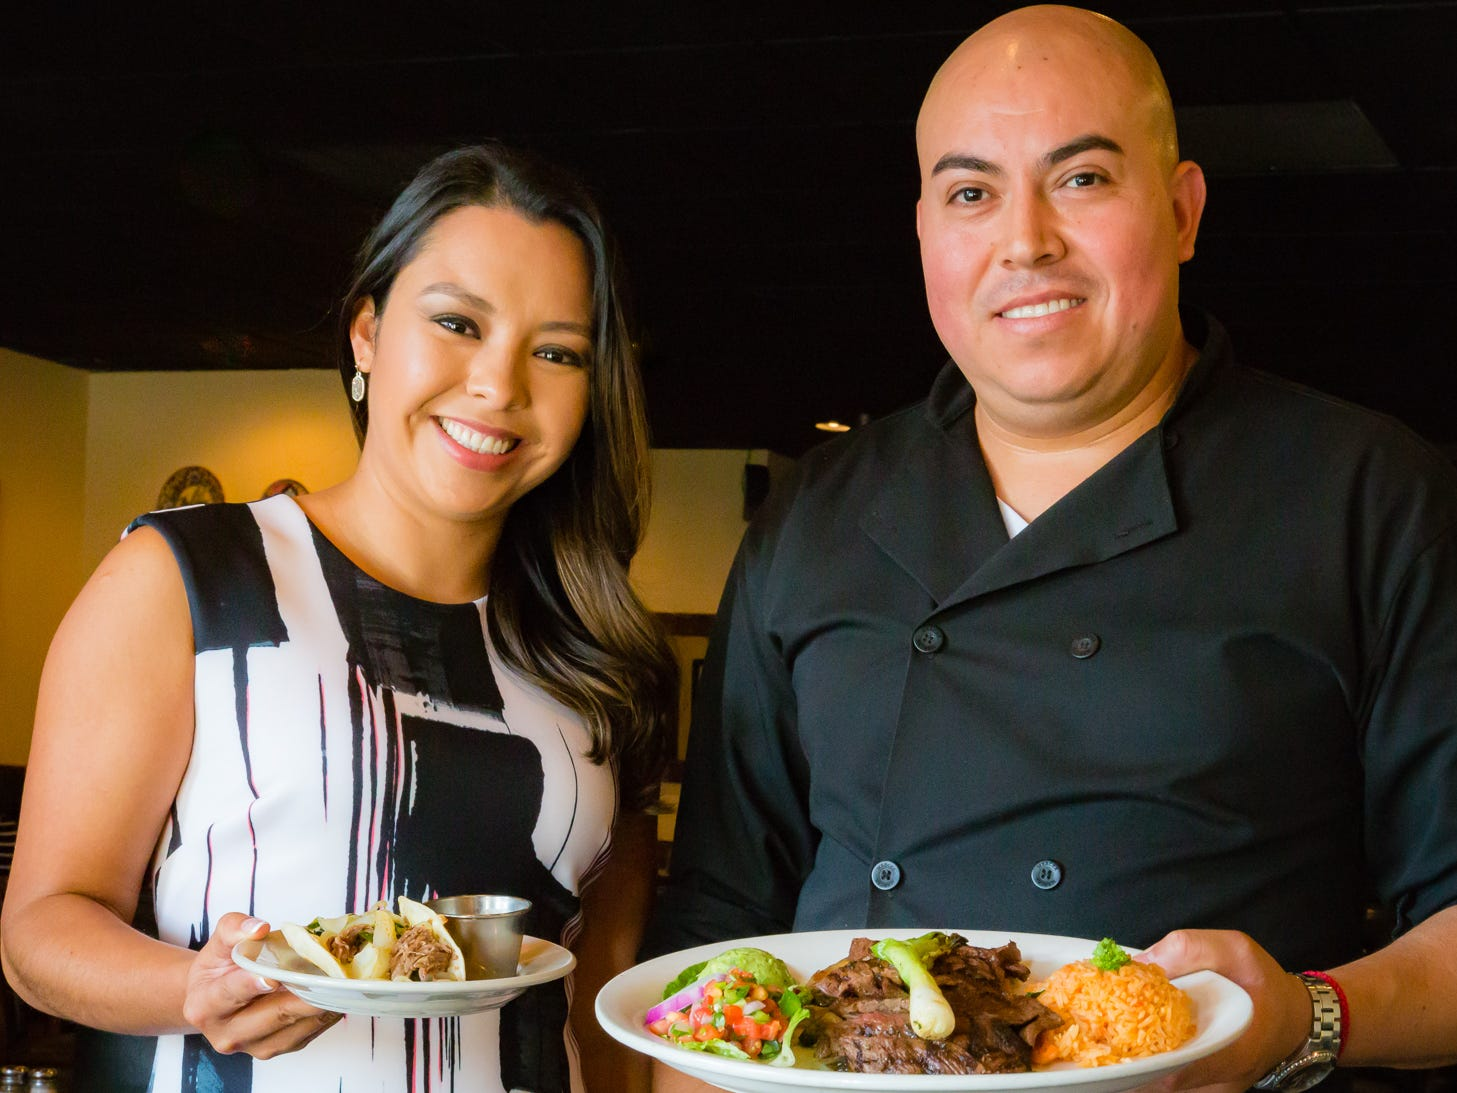 Gabriela and Sofia Tex-Mex is owned by two couples who met while chef-owner Gabrielle Pampa (right) was cooking at a smaller, now-closed Tex-Mex restaurant. Pampa and co-owner Blanca Rodriguez (left) welcome guests to their restaurant as if it were their home. Named for Gabrielle's daughter Gabriela and Rodriguez's daughter Sofia, the four-year-old restaurant makes nearly everything from scratch using top-quality ingredients, including this taco and this carne asada entree.